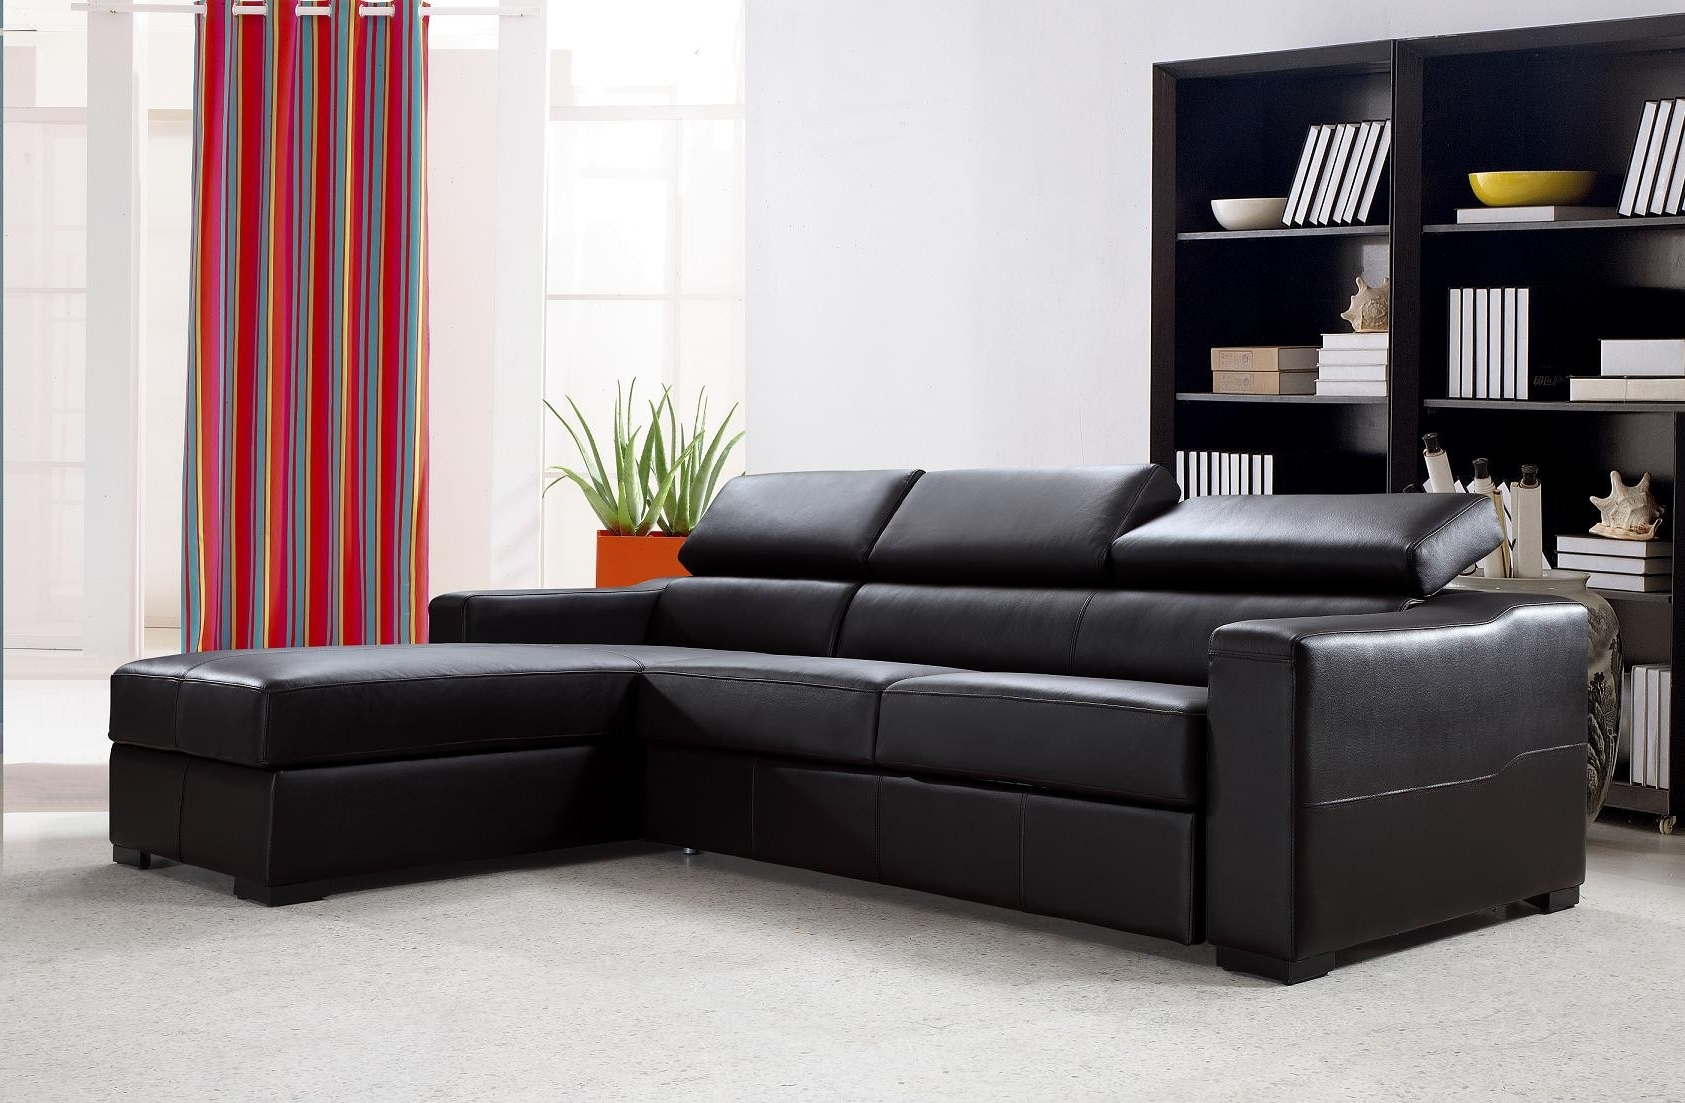 Current Leather Sofas With Storage Pertaining To Flip Reversible Espresso Leather Sectional Sofa Bed W/ Storage (View 5 of 20)